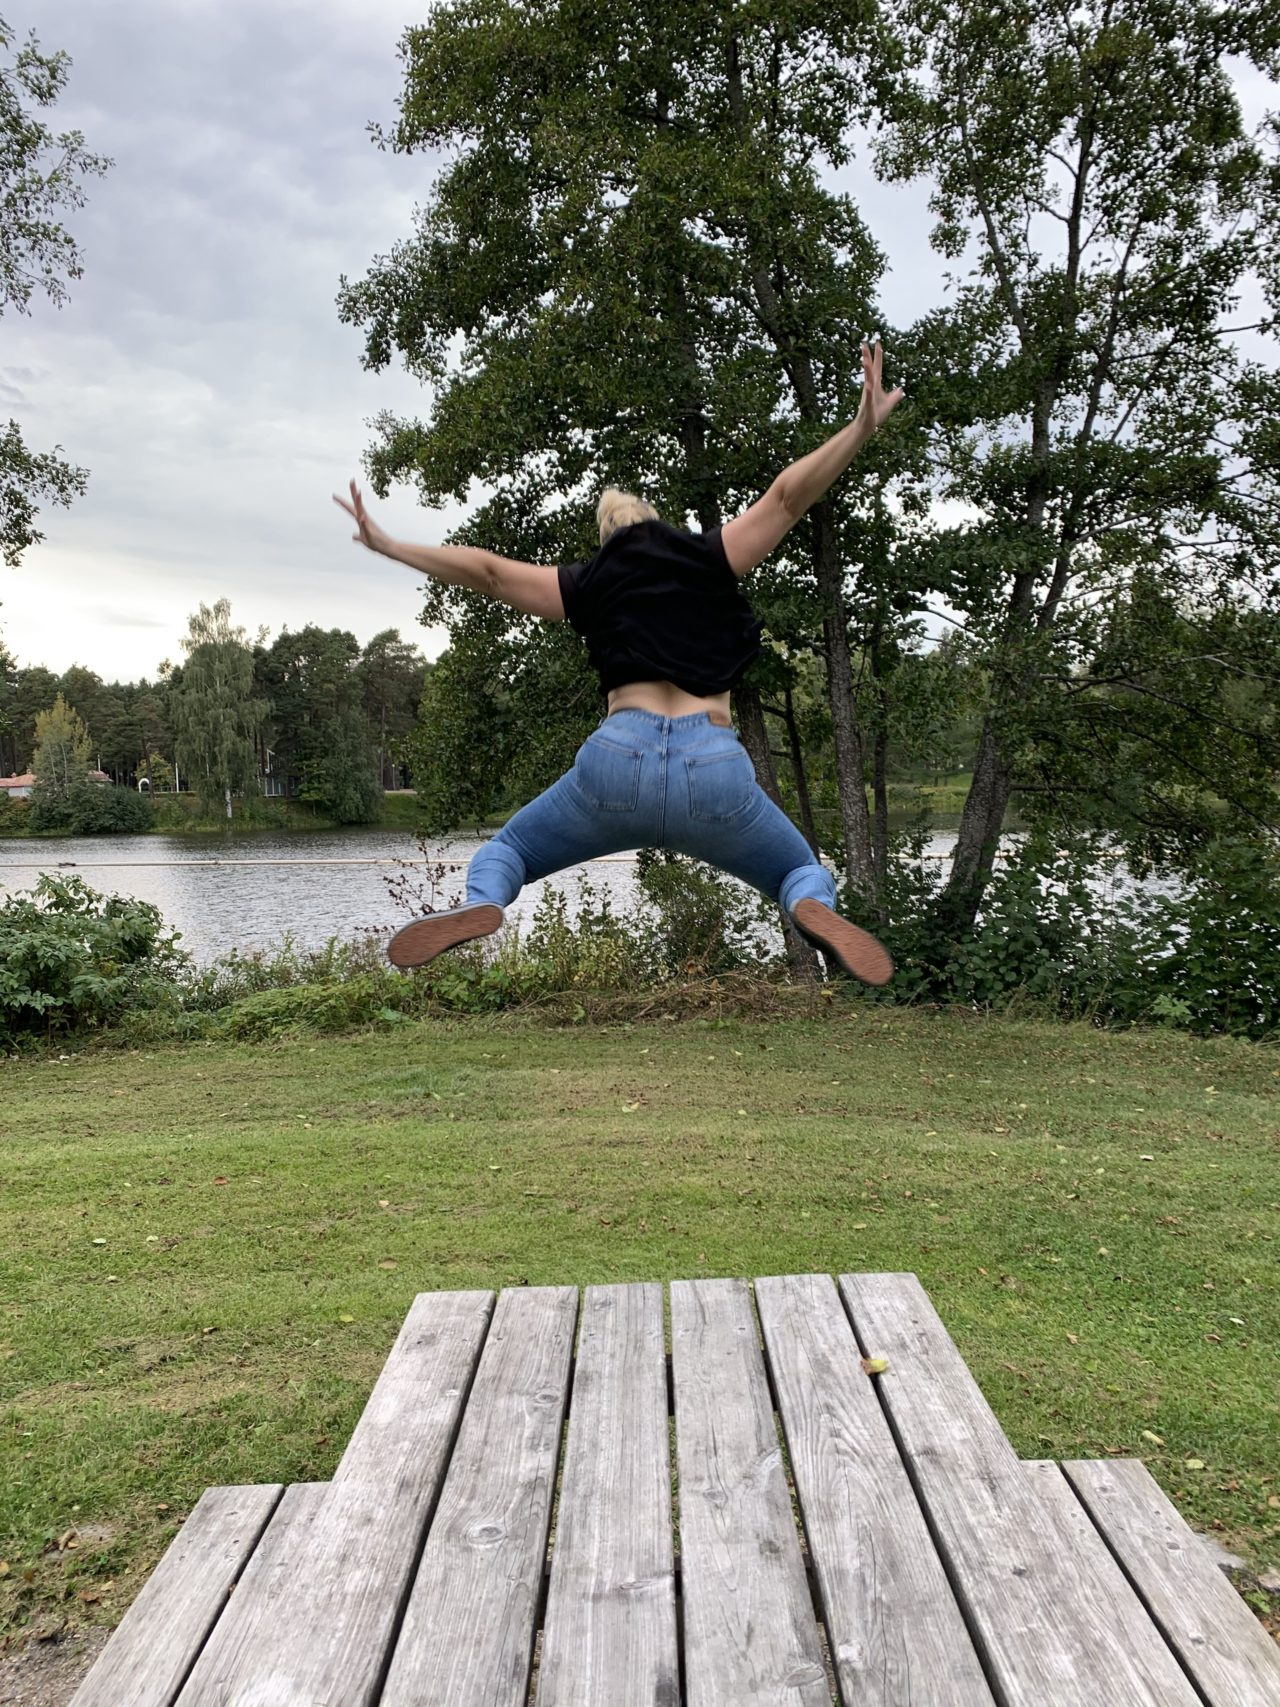 Woman In Black Shirt Jumping Off A Wooden Table